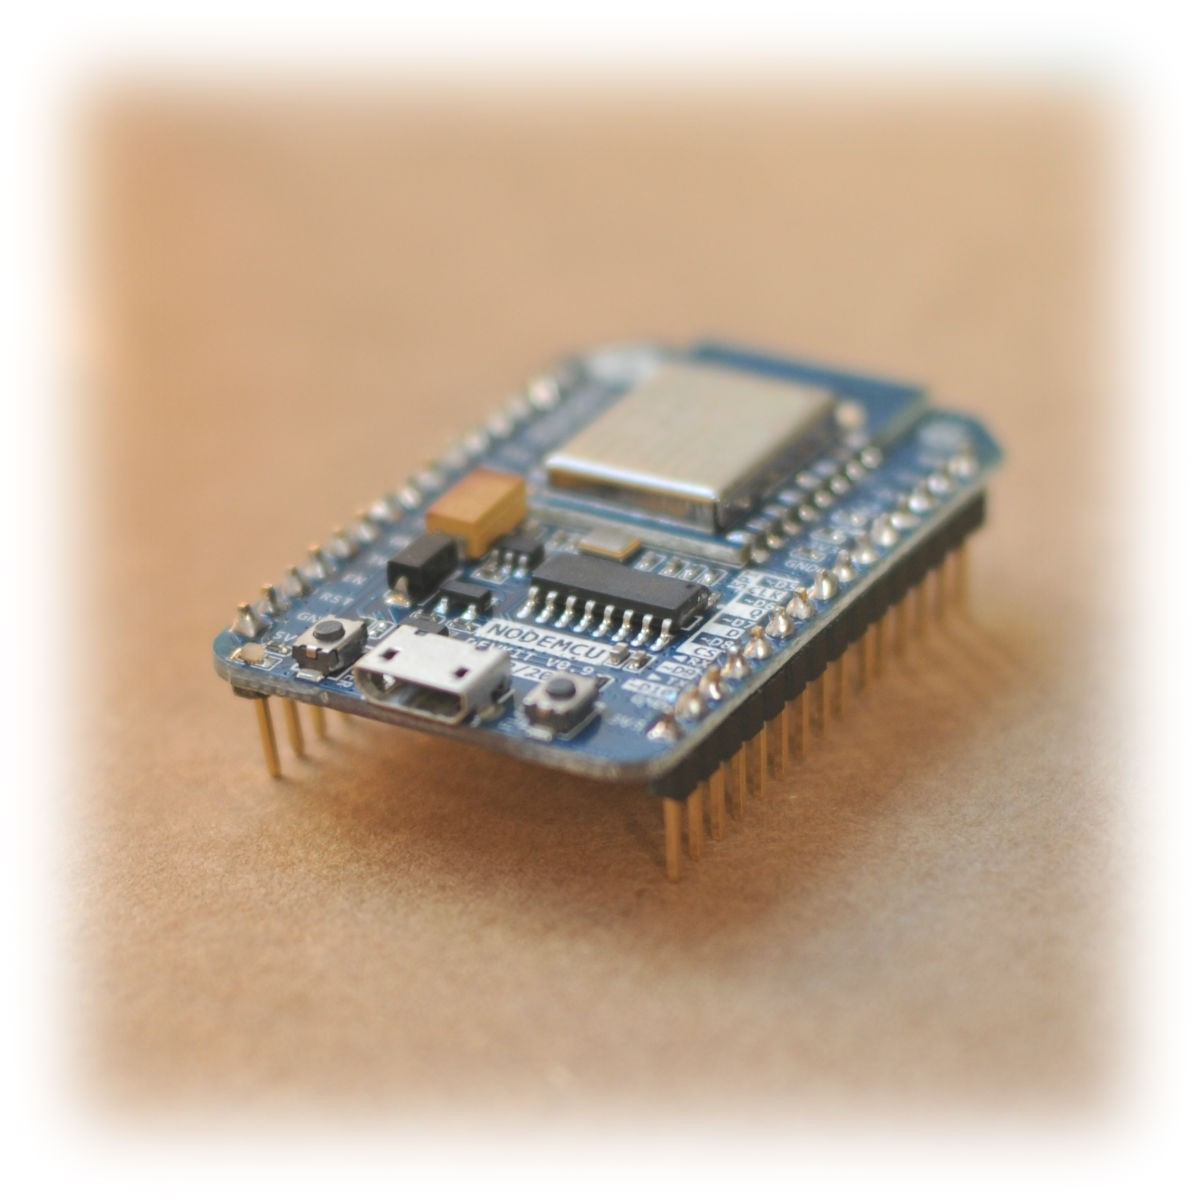 NodeMcu -- An open-source firmware based on ESP8266 wifi-soc